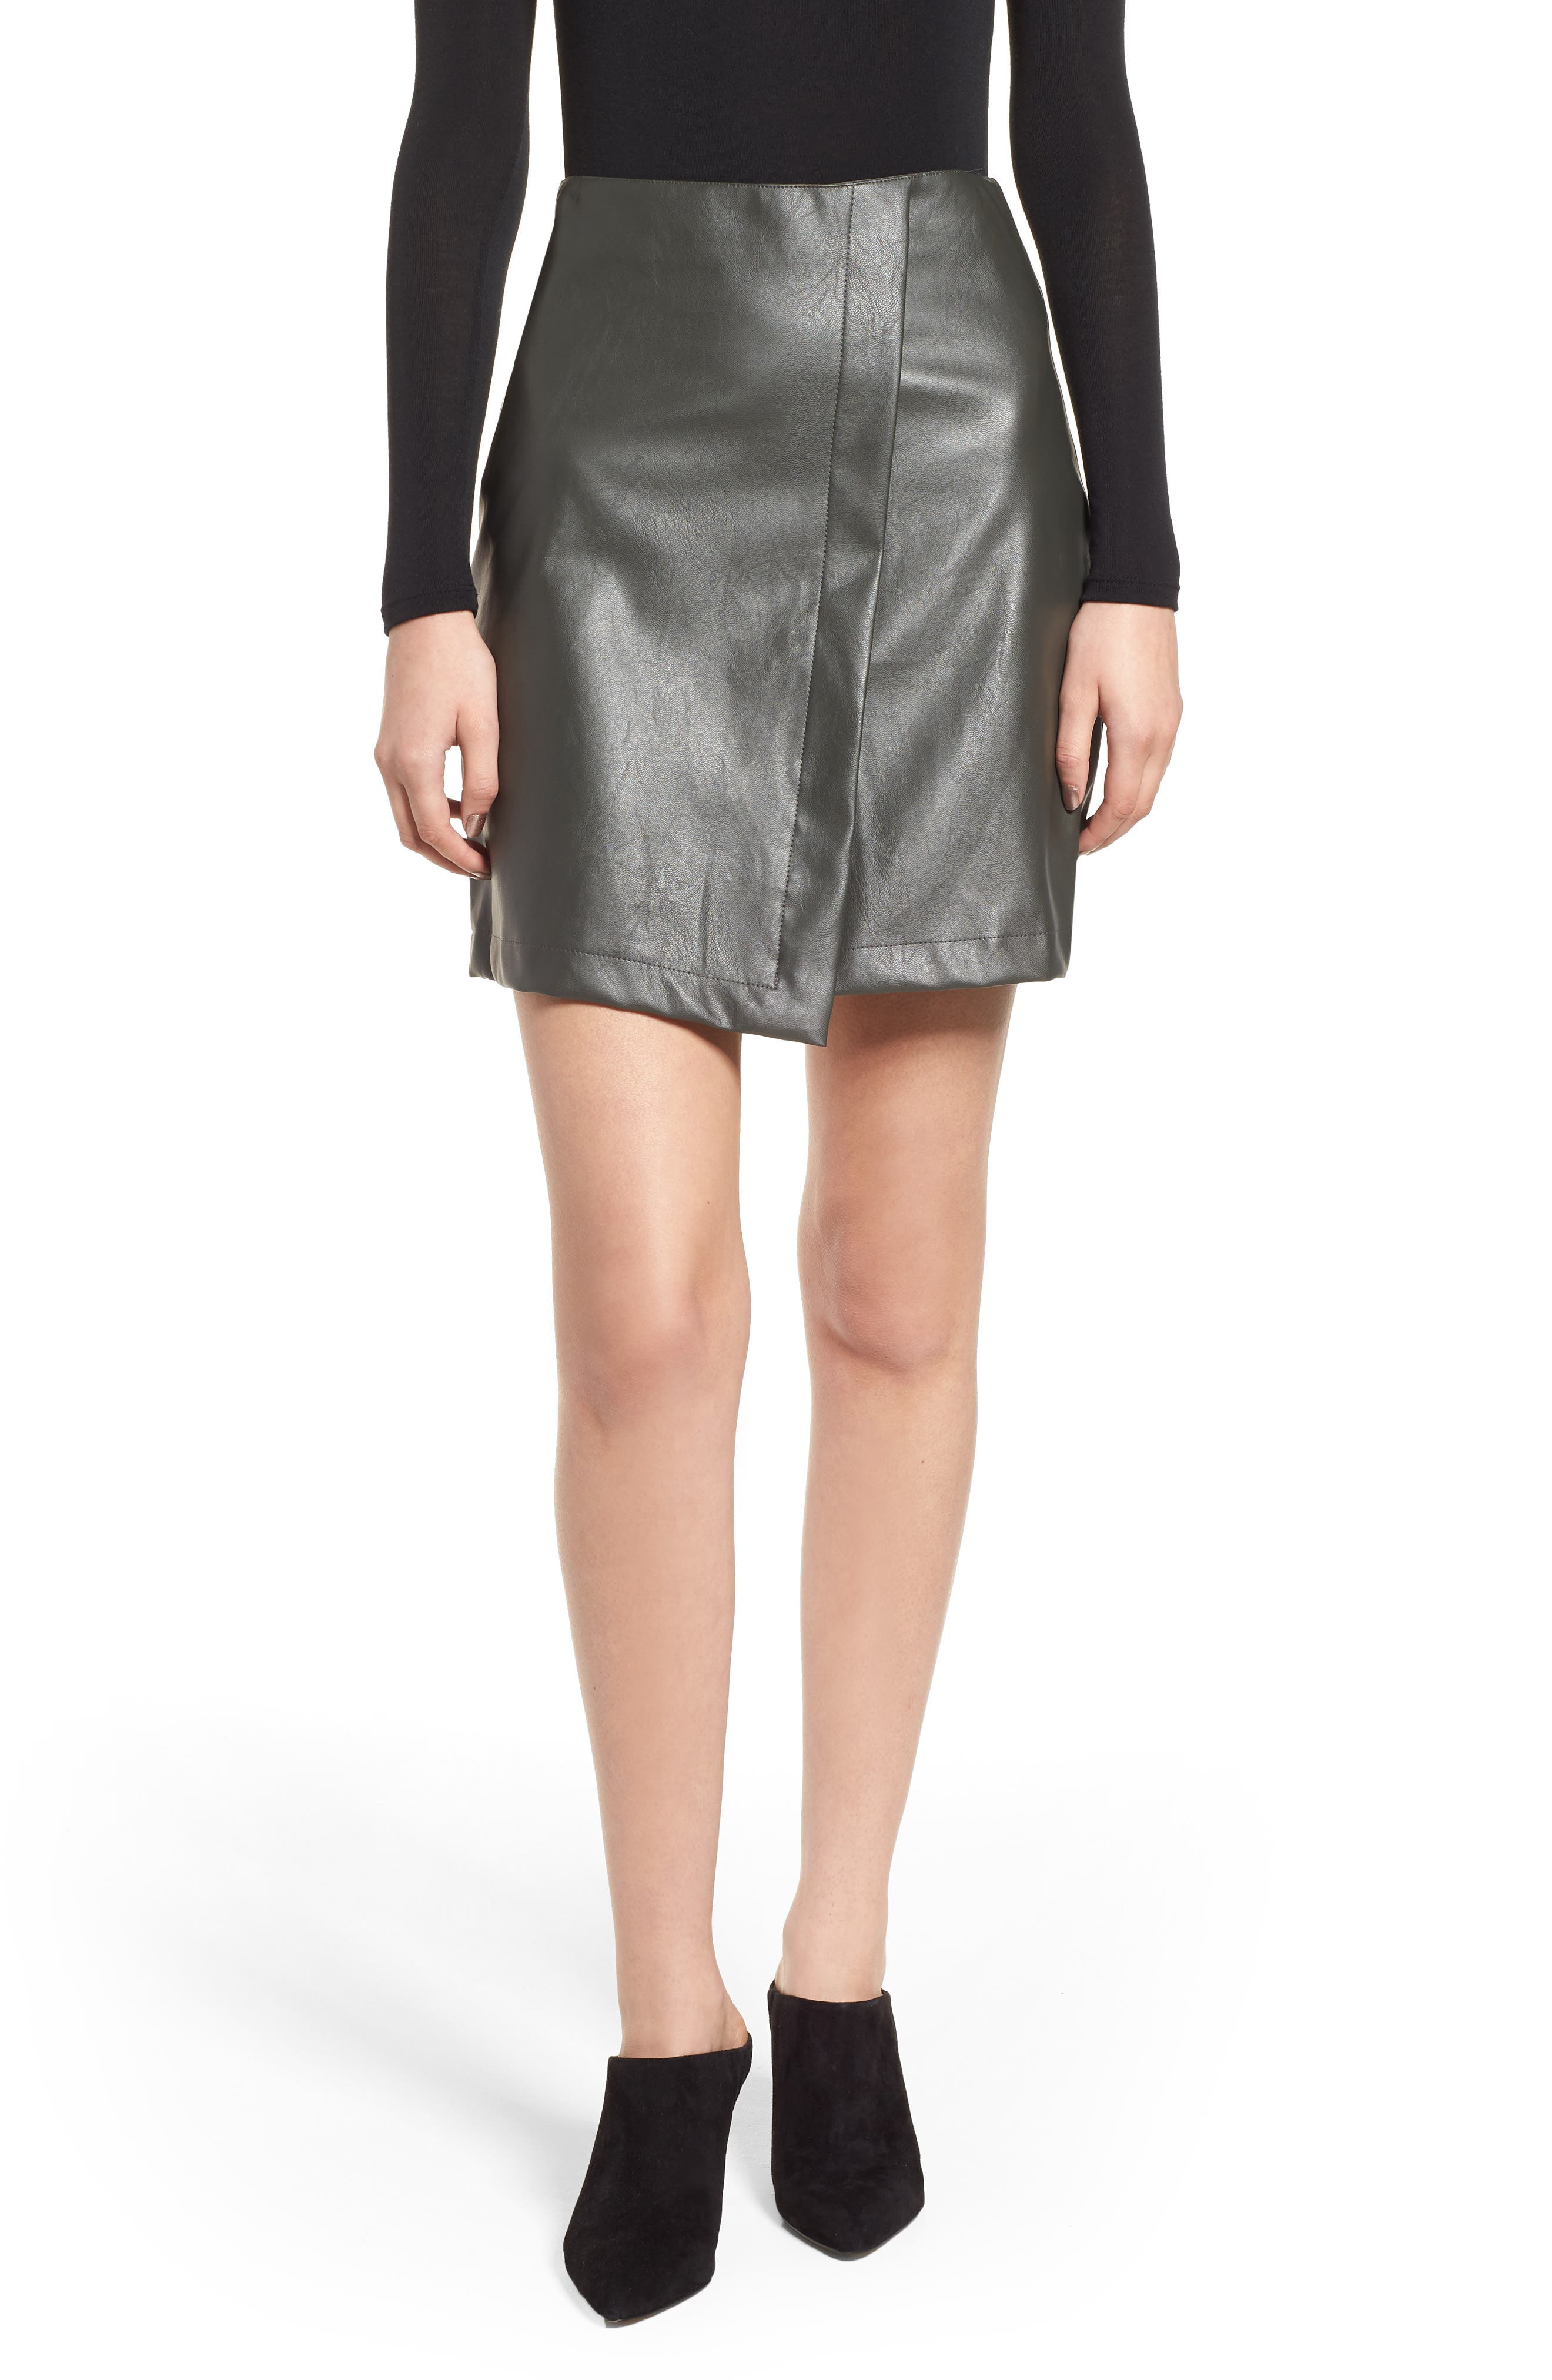 Bishop + Young A-Line Faux Leather Miniskirt,                             Main thumbnail 1, color,                             Olive